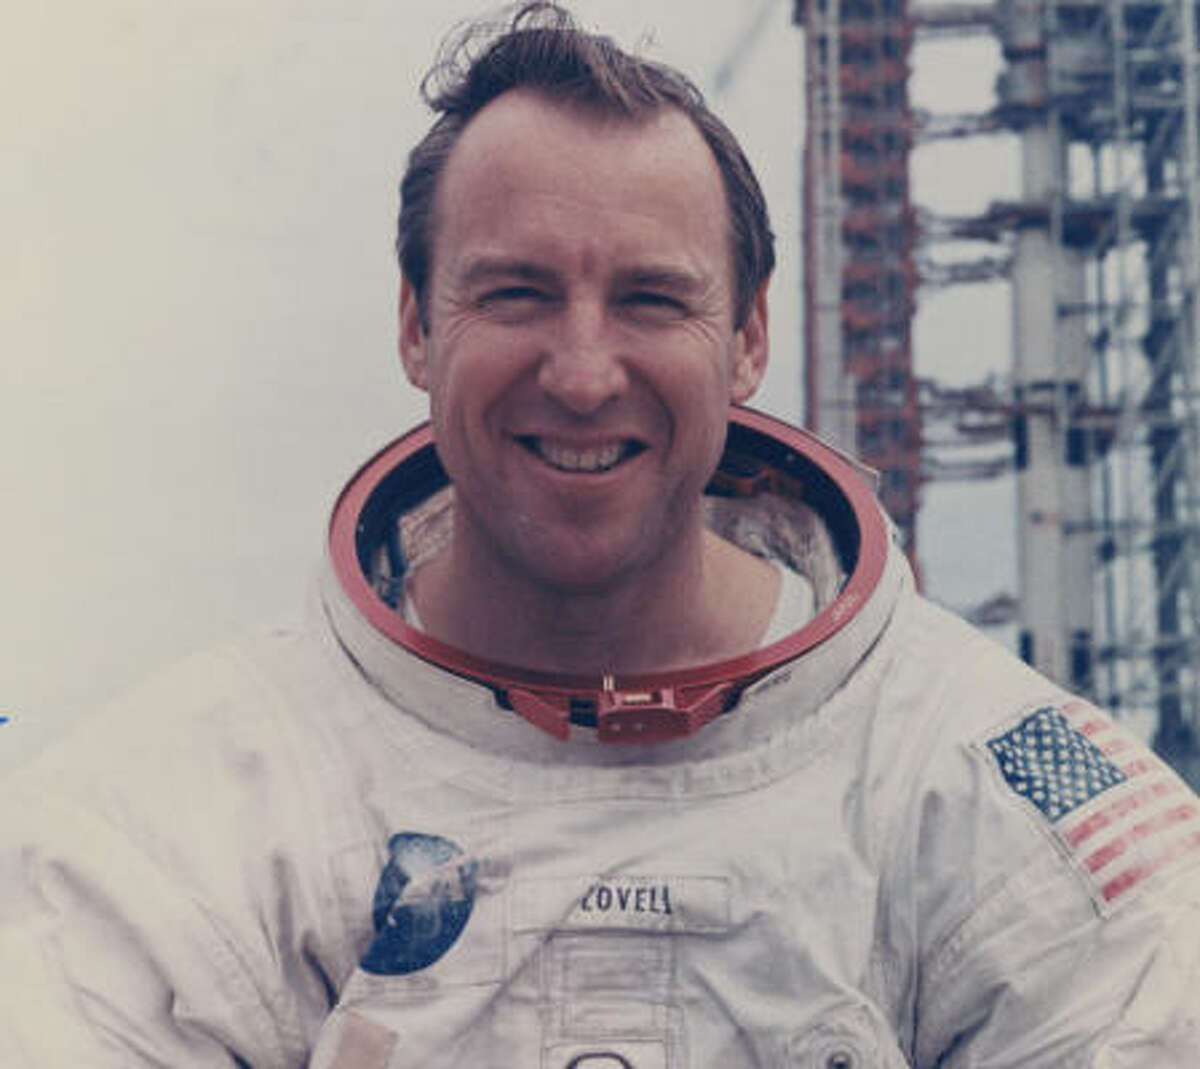 Astronaut James Lovell Jr. was commander of the Apollo 13 lunar landing mission that developed problems in space, leading to his now-famous utterance.